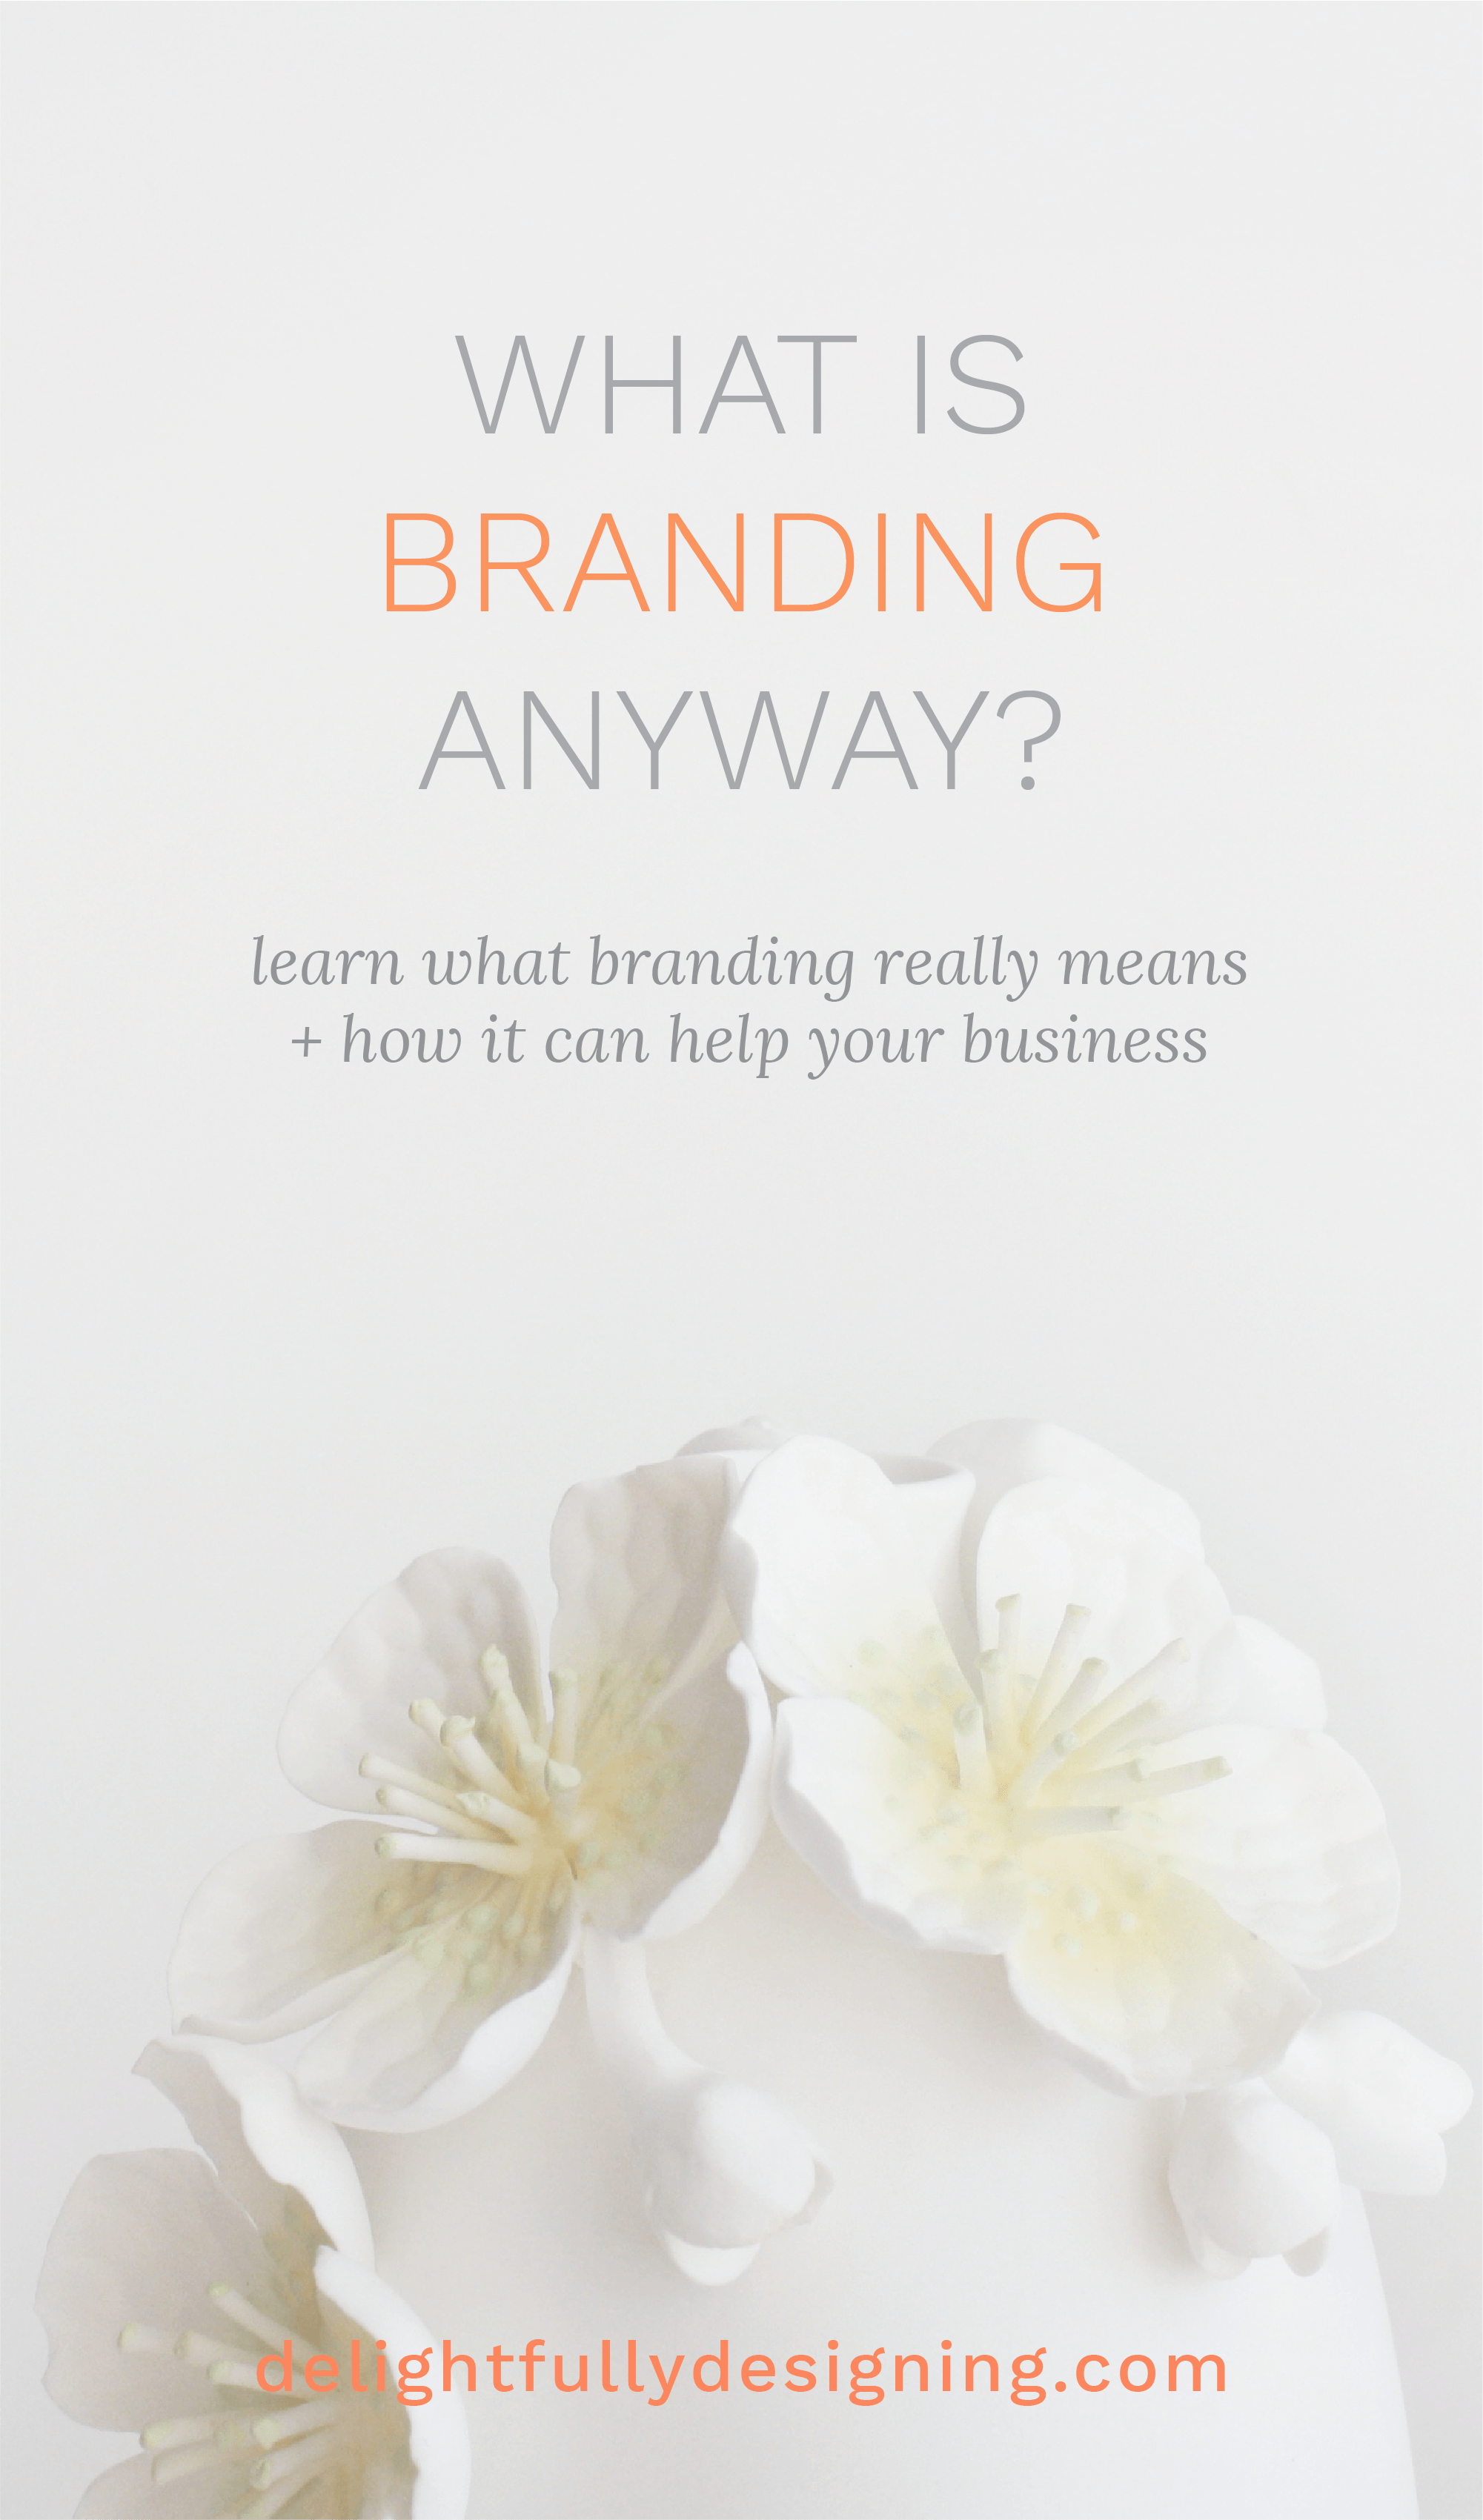 What is branding?, what is branding, branding, brand, brand my business, branding my business, branding myself, how do I brand my business, how do I brand myself, tips for branding, tips for brand design, brand design